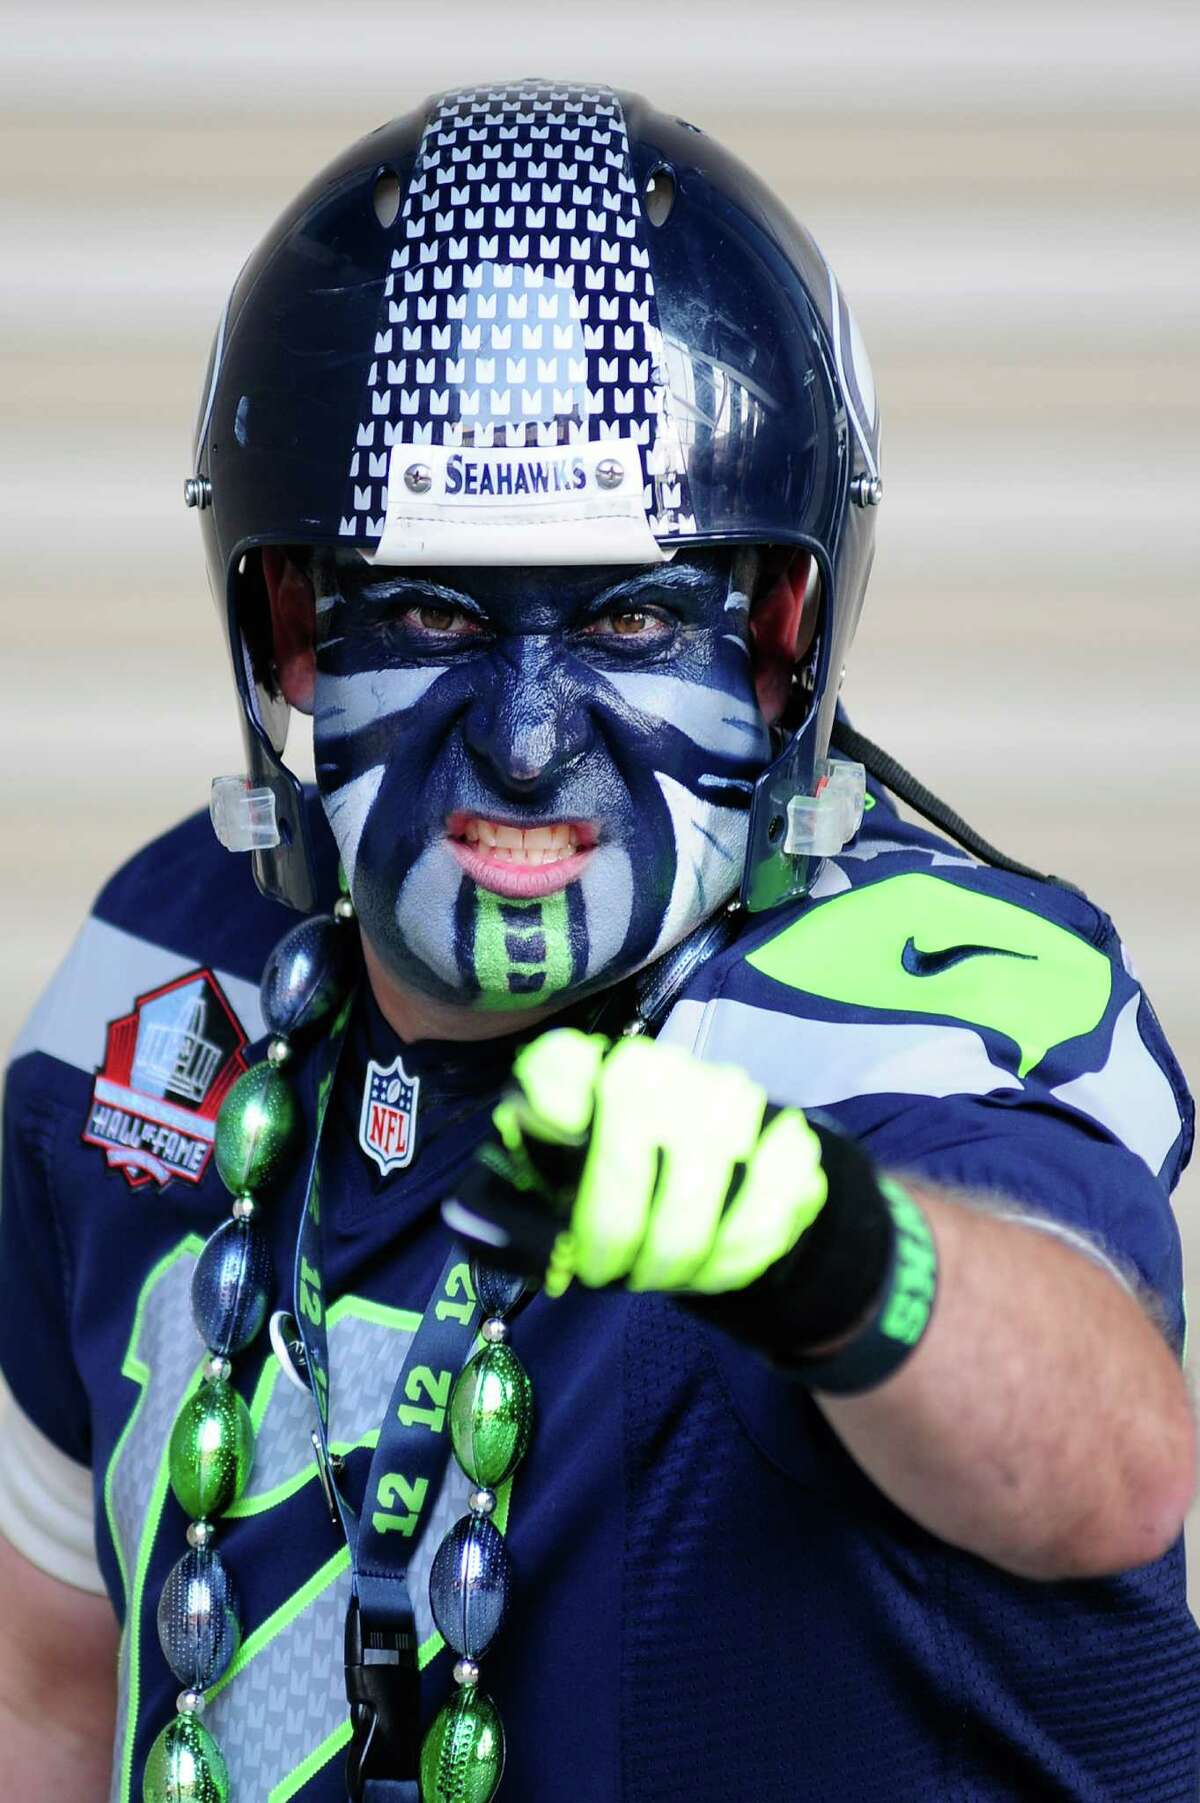 Brad Carter of Federal Way gives his best game face outside CenturyLink Field before the Seahawks vs Cowboys game on Sunday, September 16, 2012. The Seahawks, playing to a crowd of 68,000, won easily with a score of 7-27.